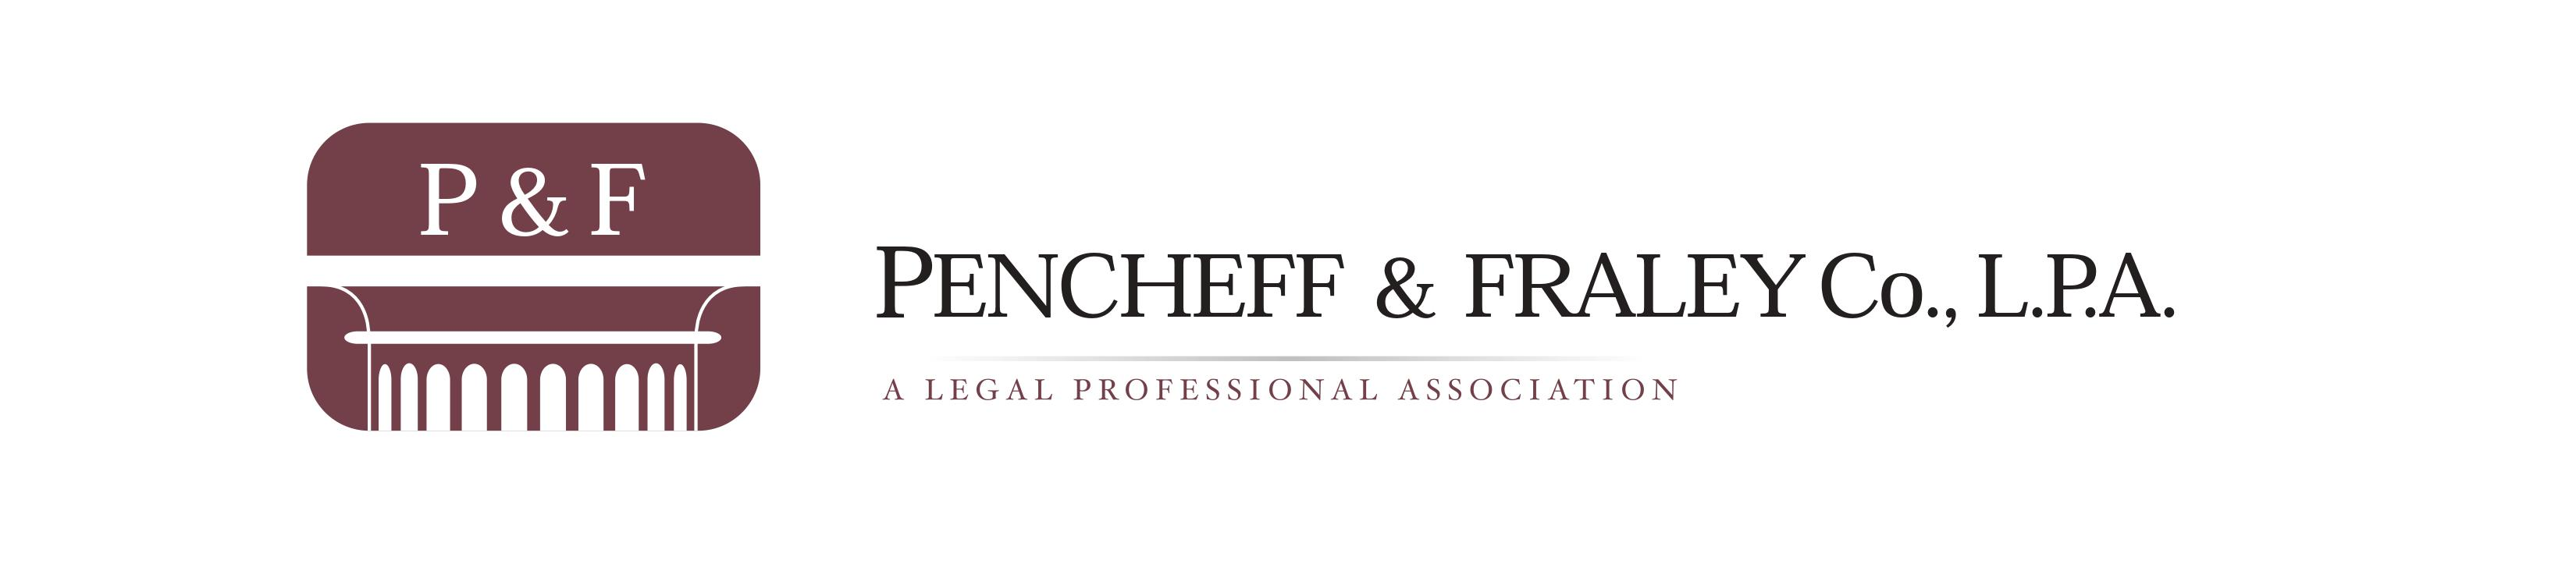 Pencheff & Fraley Co., LPA Injury and Accident Attorneys - lawyer  | Photo 1 of 4 | Address: 4151 Executive Pkwy Suite 355, Westerville, OH 43081, United States | Phone: (614) 224-4114